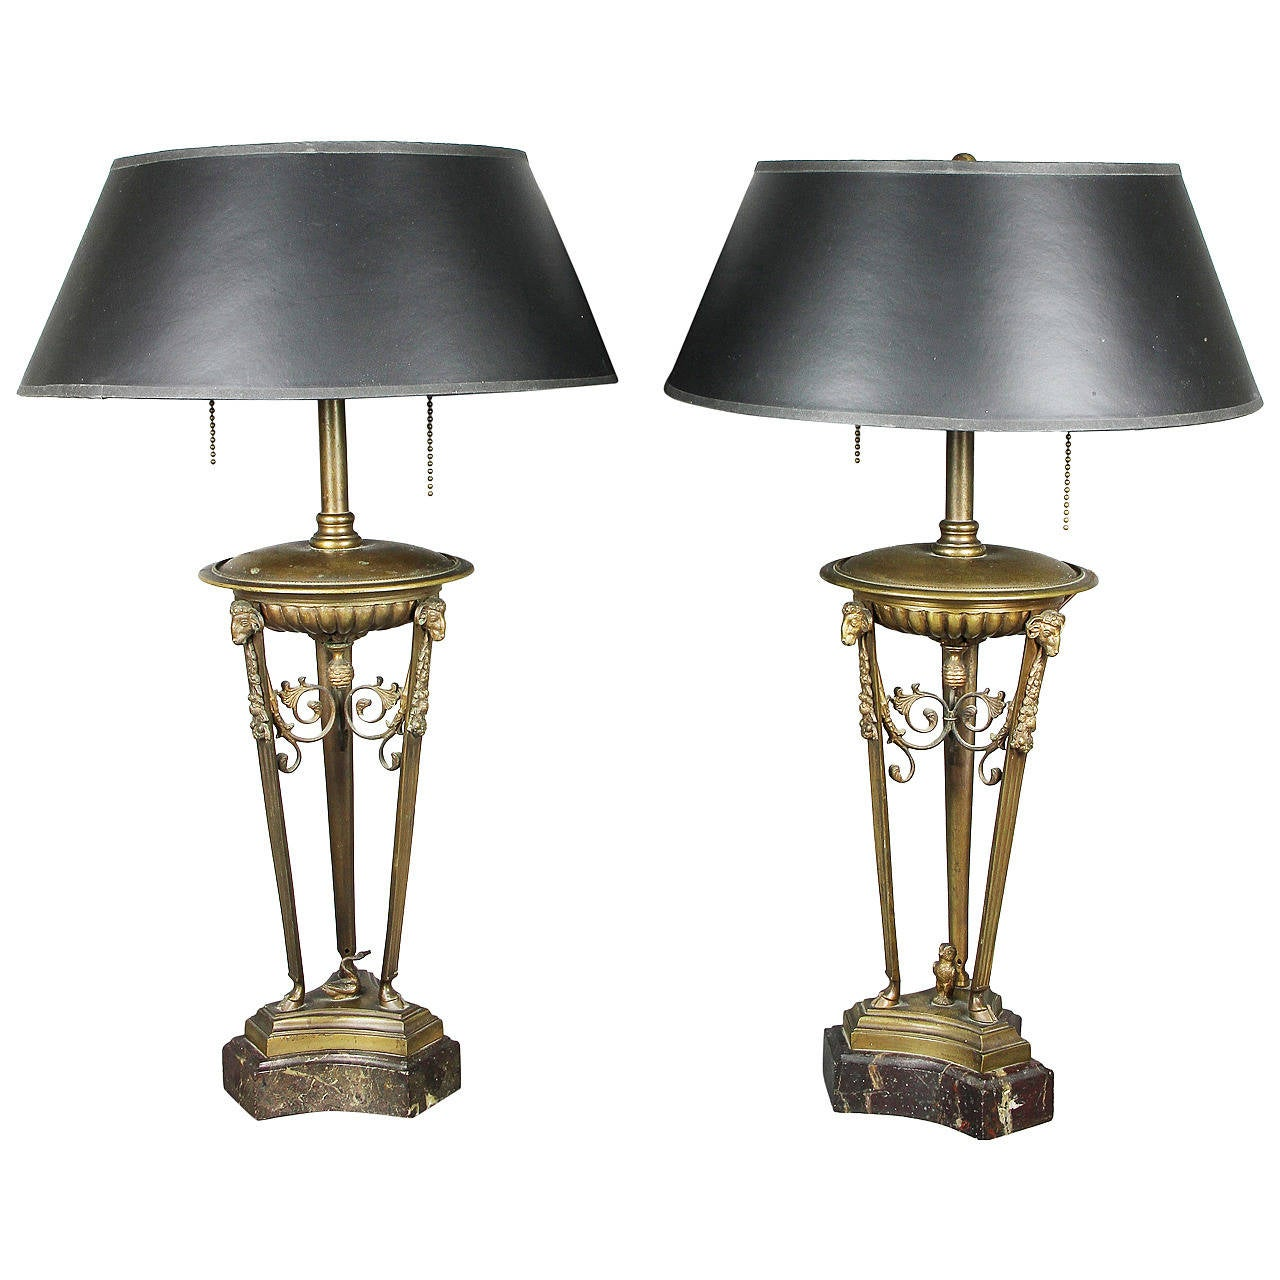 Pair of Neoclassical Style Bronze Table Lamps